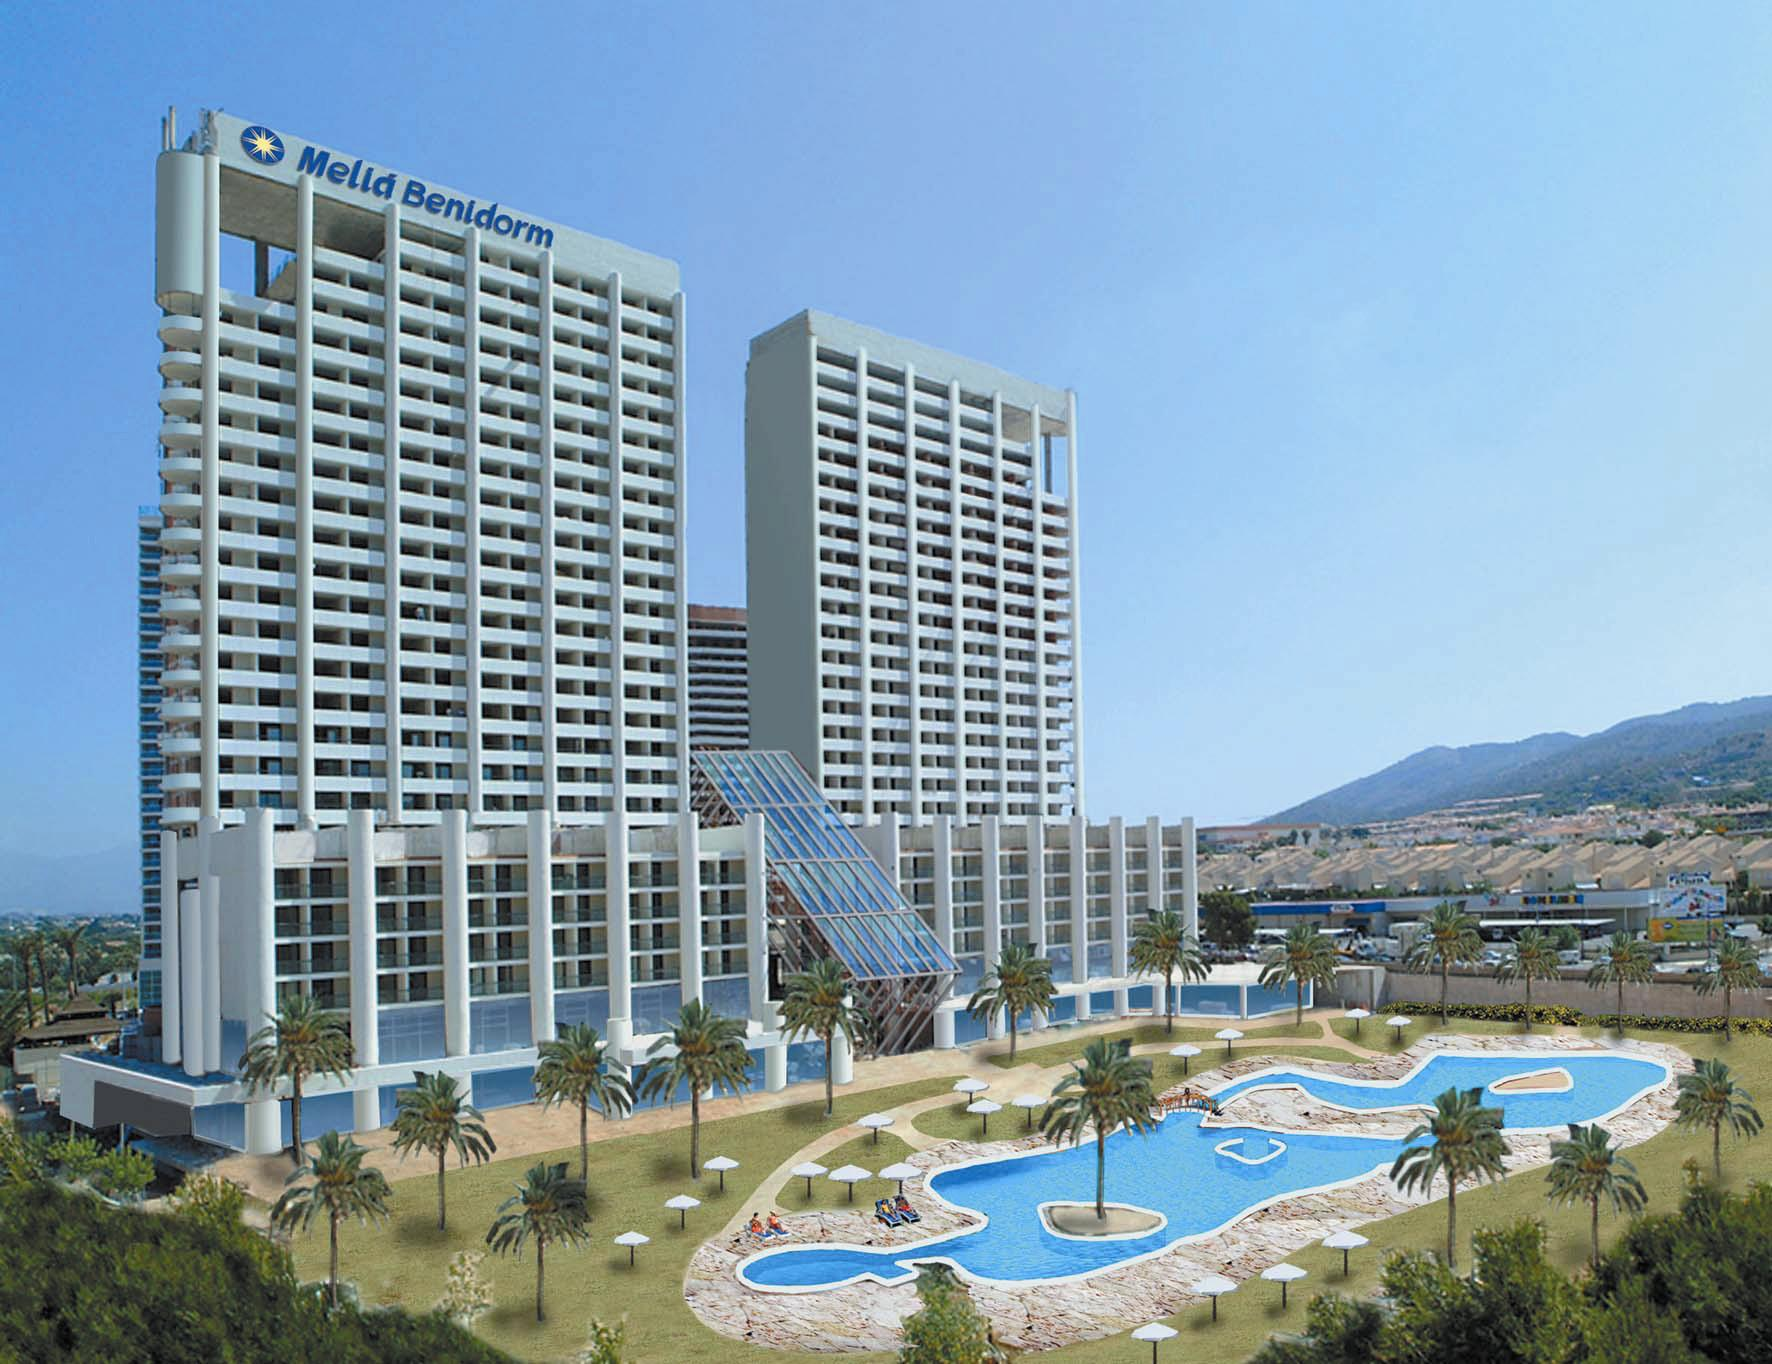 All Inclusive Spa Hotels In Benidorm